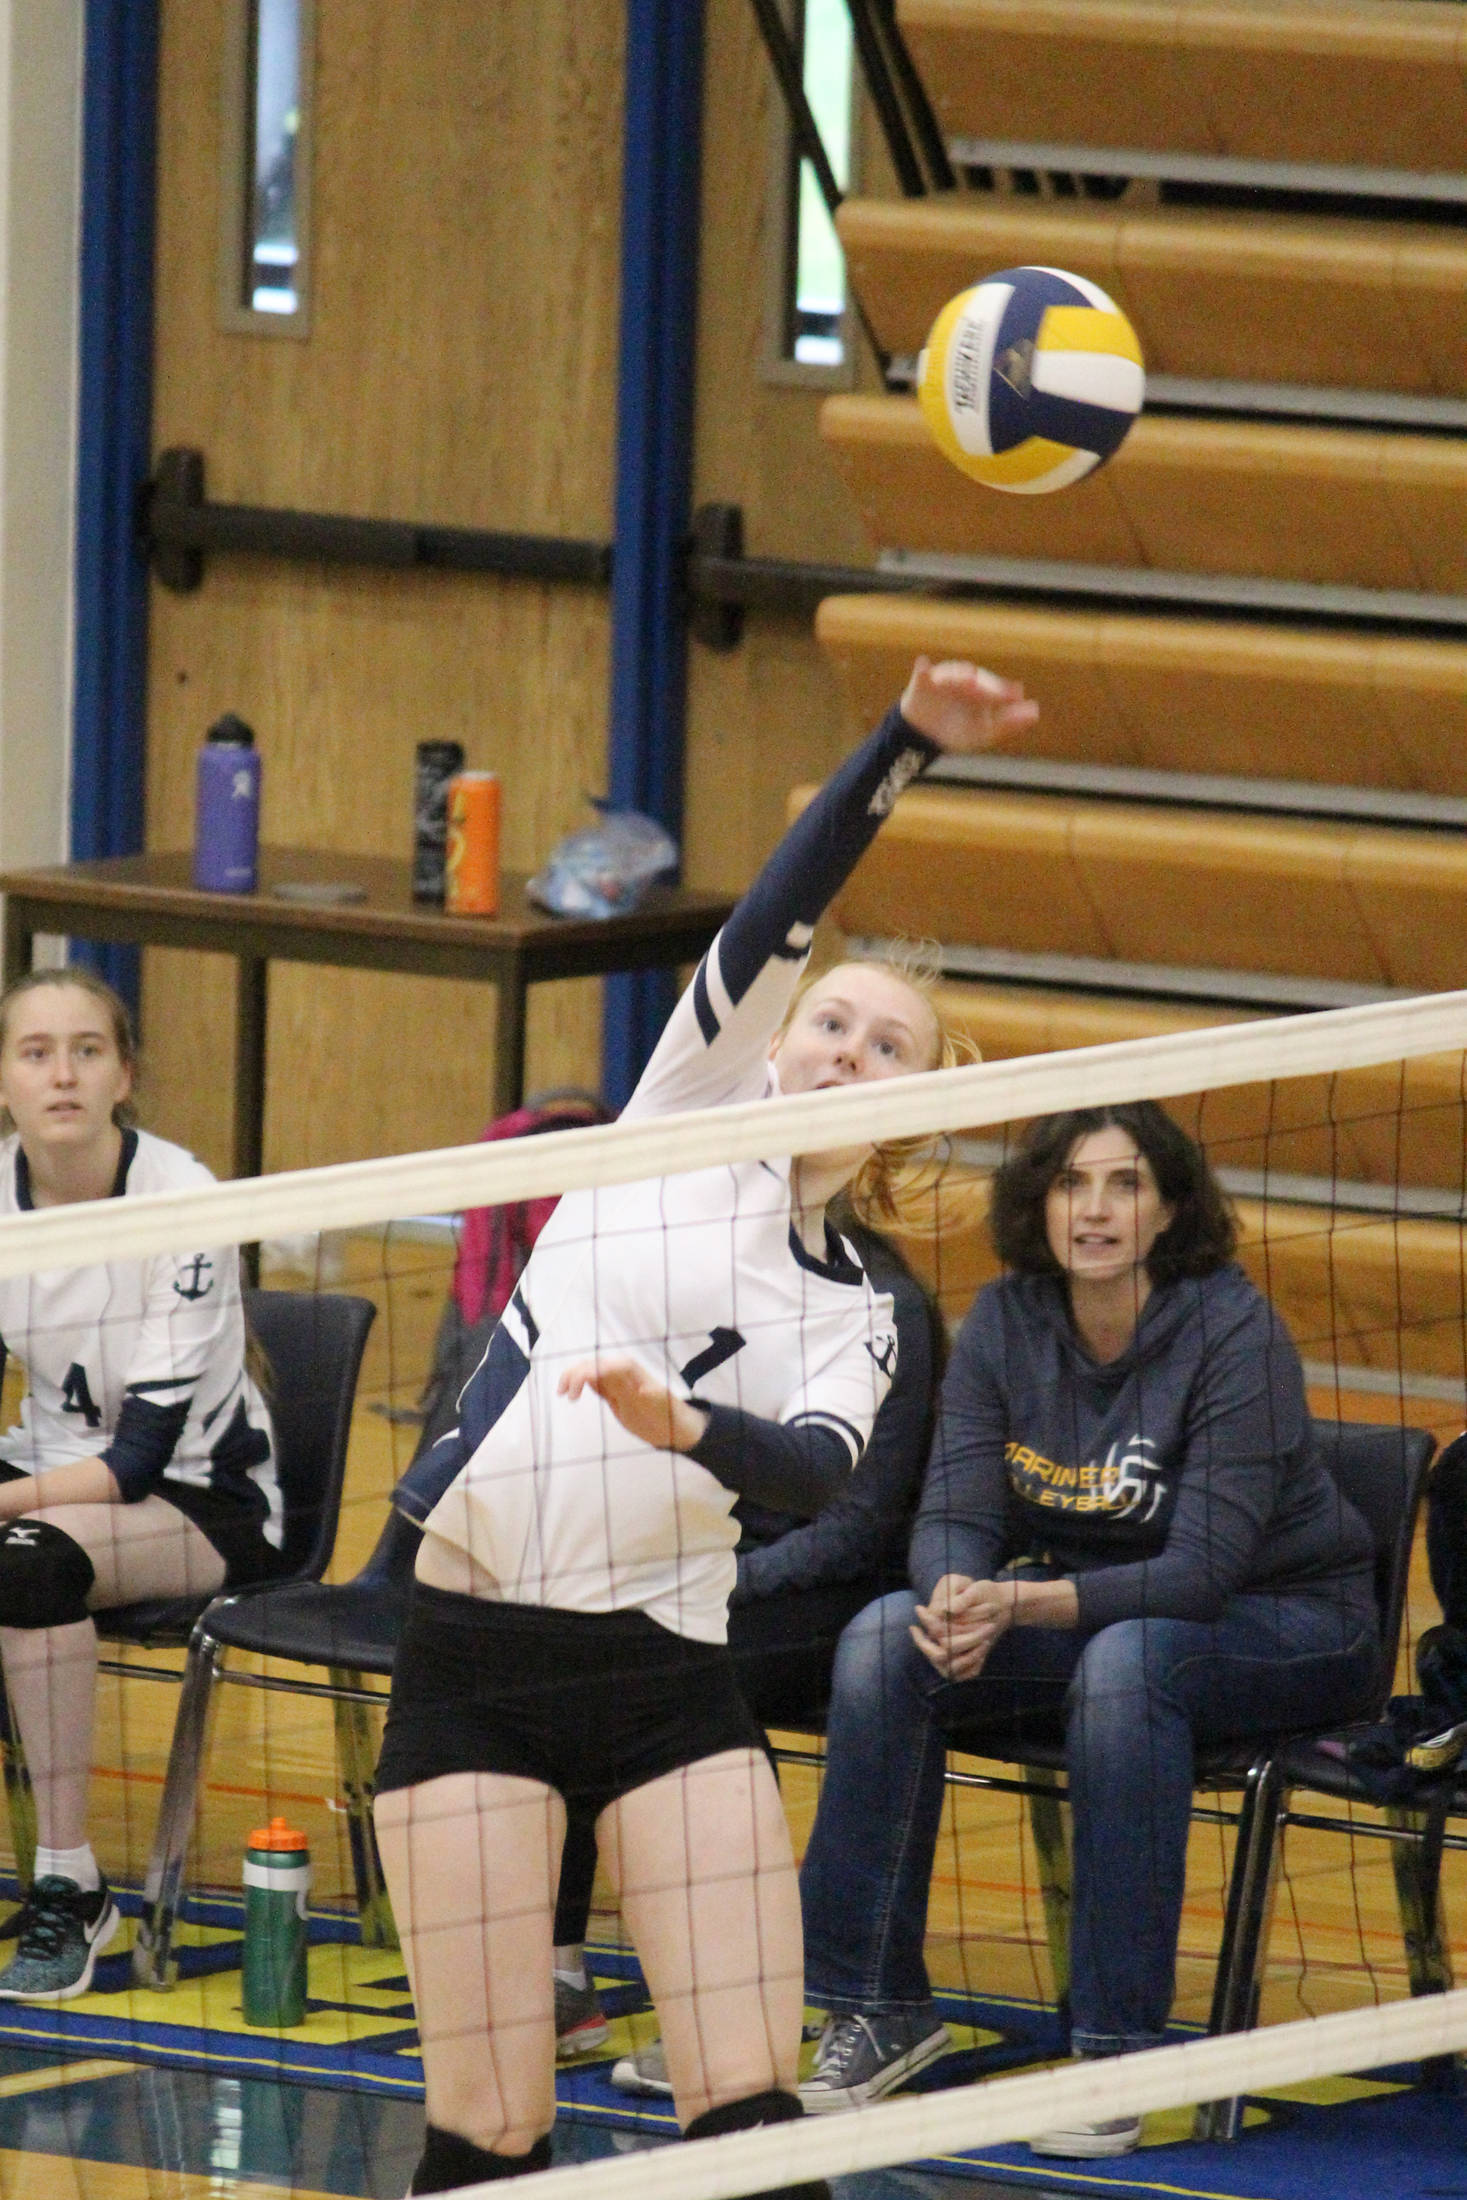 """<span class=""""neFMT neFMT_PhotoCredit"""">Photo by Megan Pacer/Homer News</span>                                 Homer's Kelli Bishop spikes the ball to the Seward Seahawks during a game Saturday, Sept. 22, 2018 in the Alice Witte Gymnasium in Homer, Alaska."""